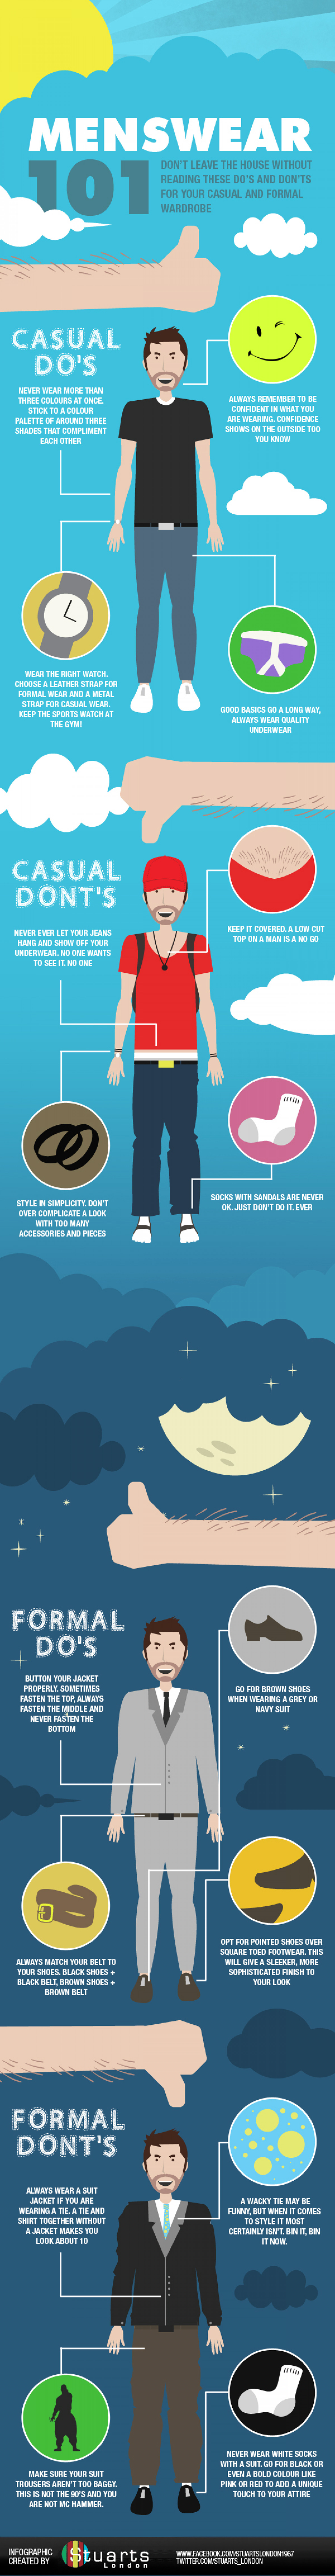 Menswear 101: The Do's and Don'ts  Infographic